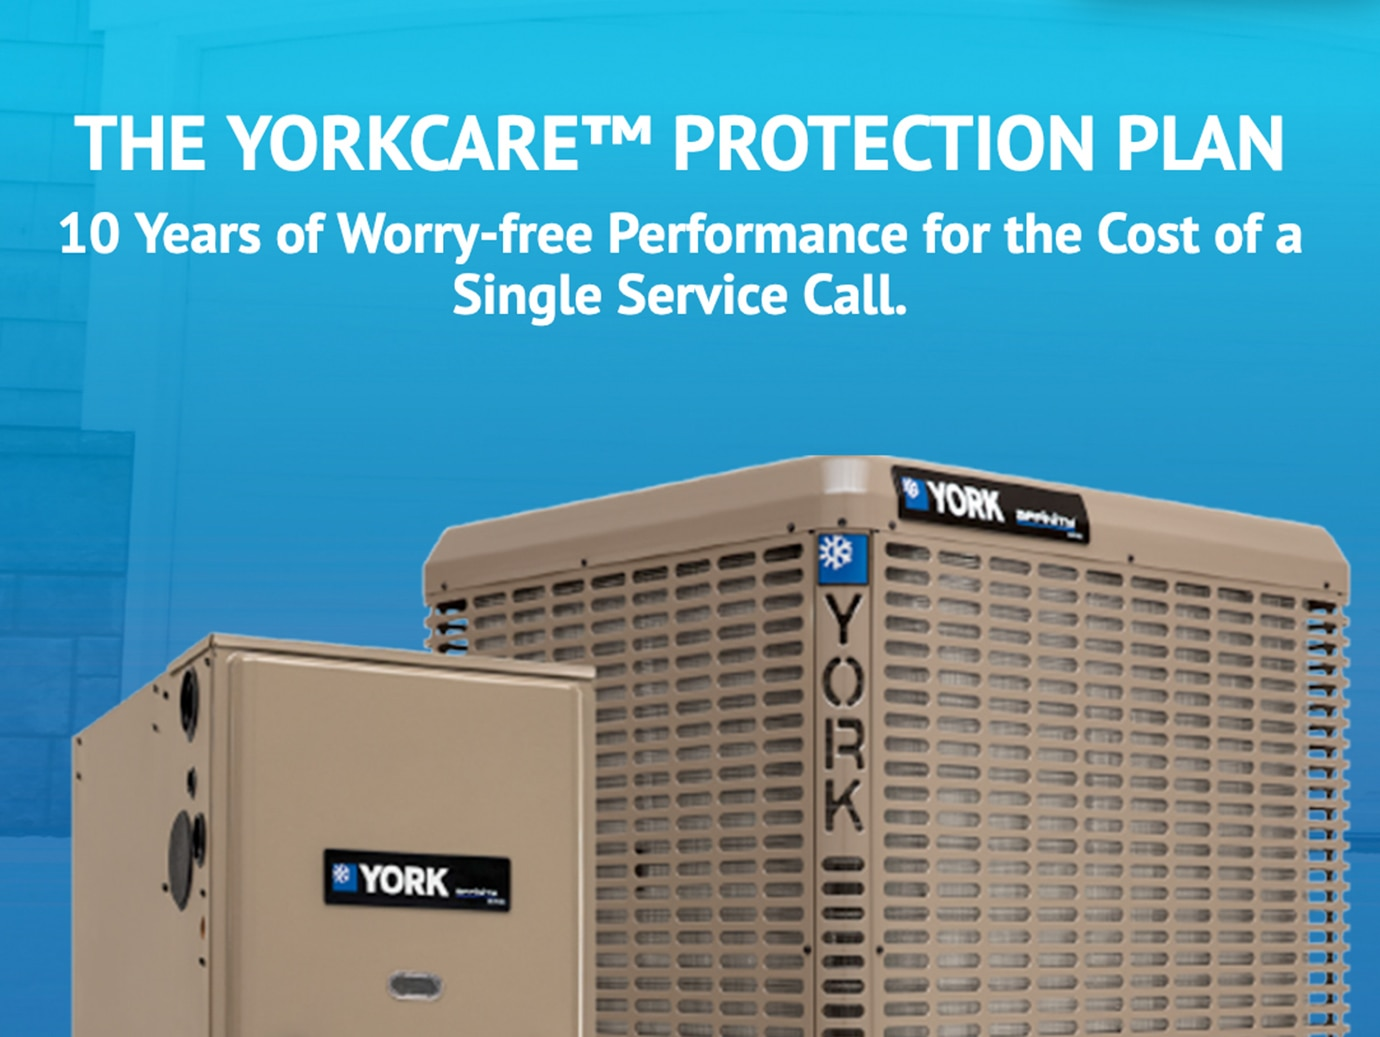 The York care protection plan